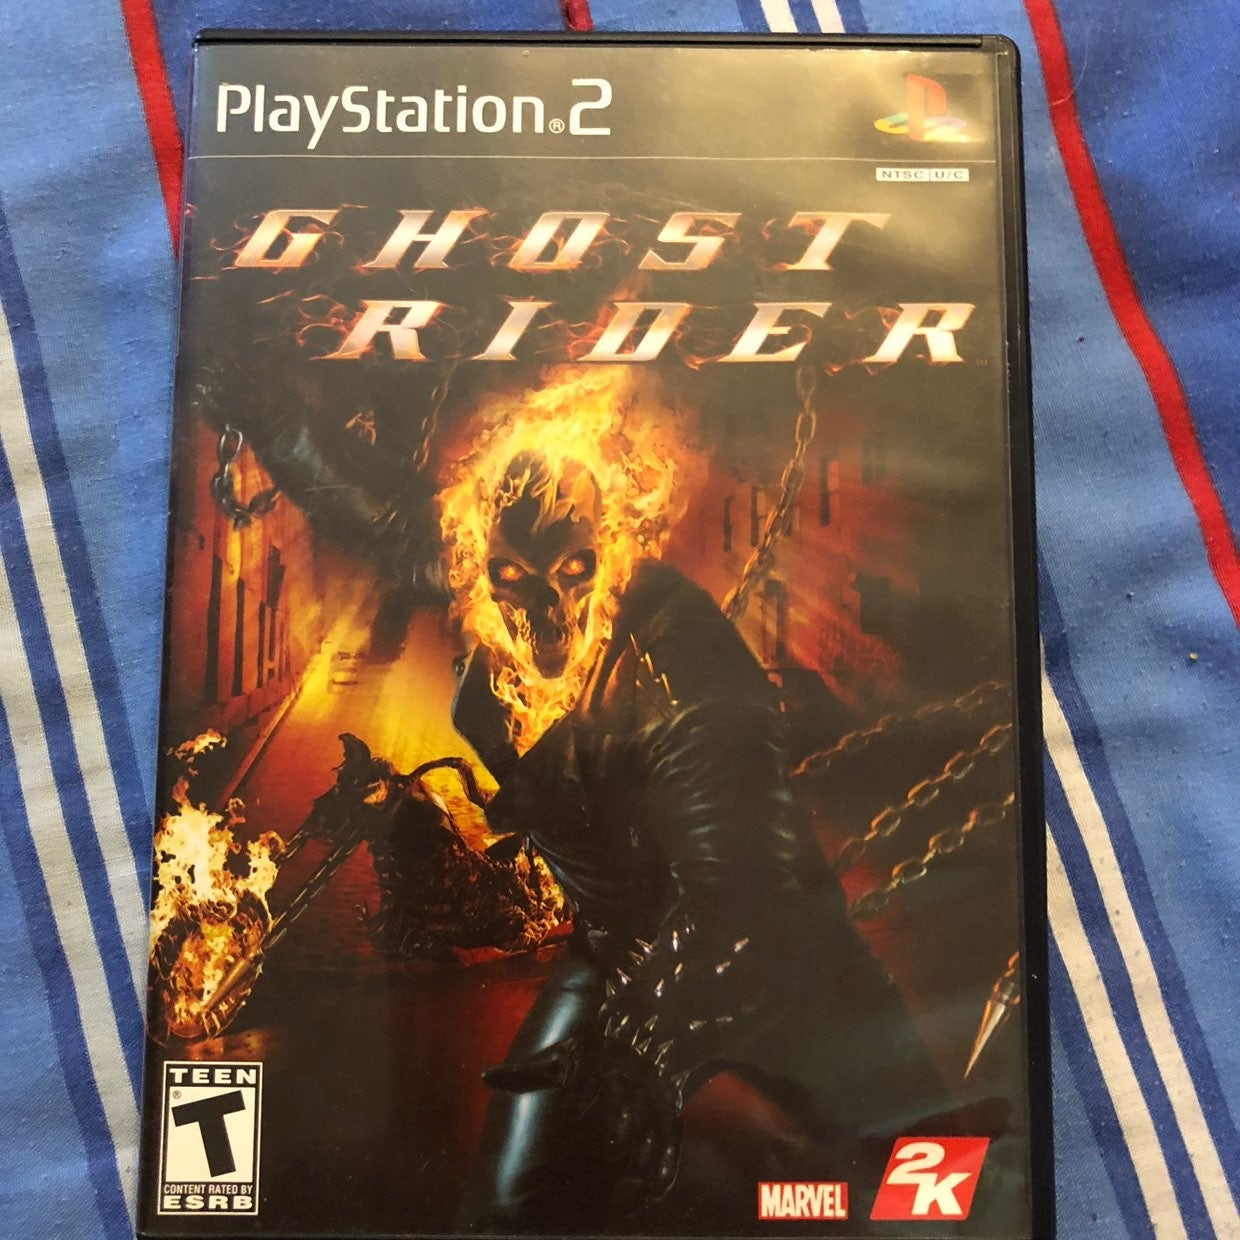 PS2 game Ghost Rider